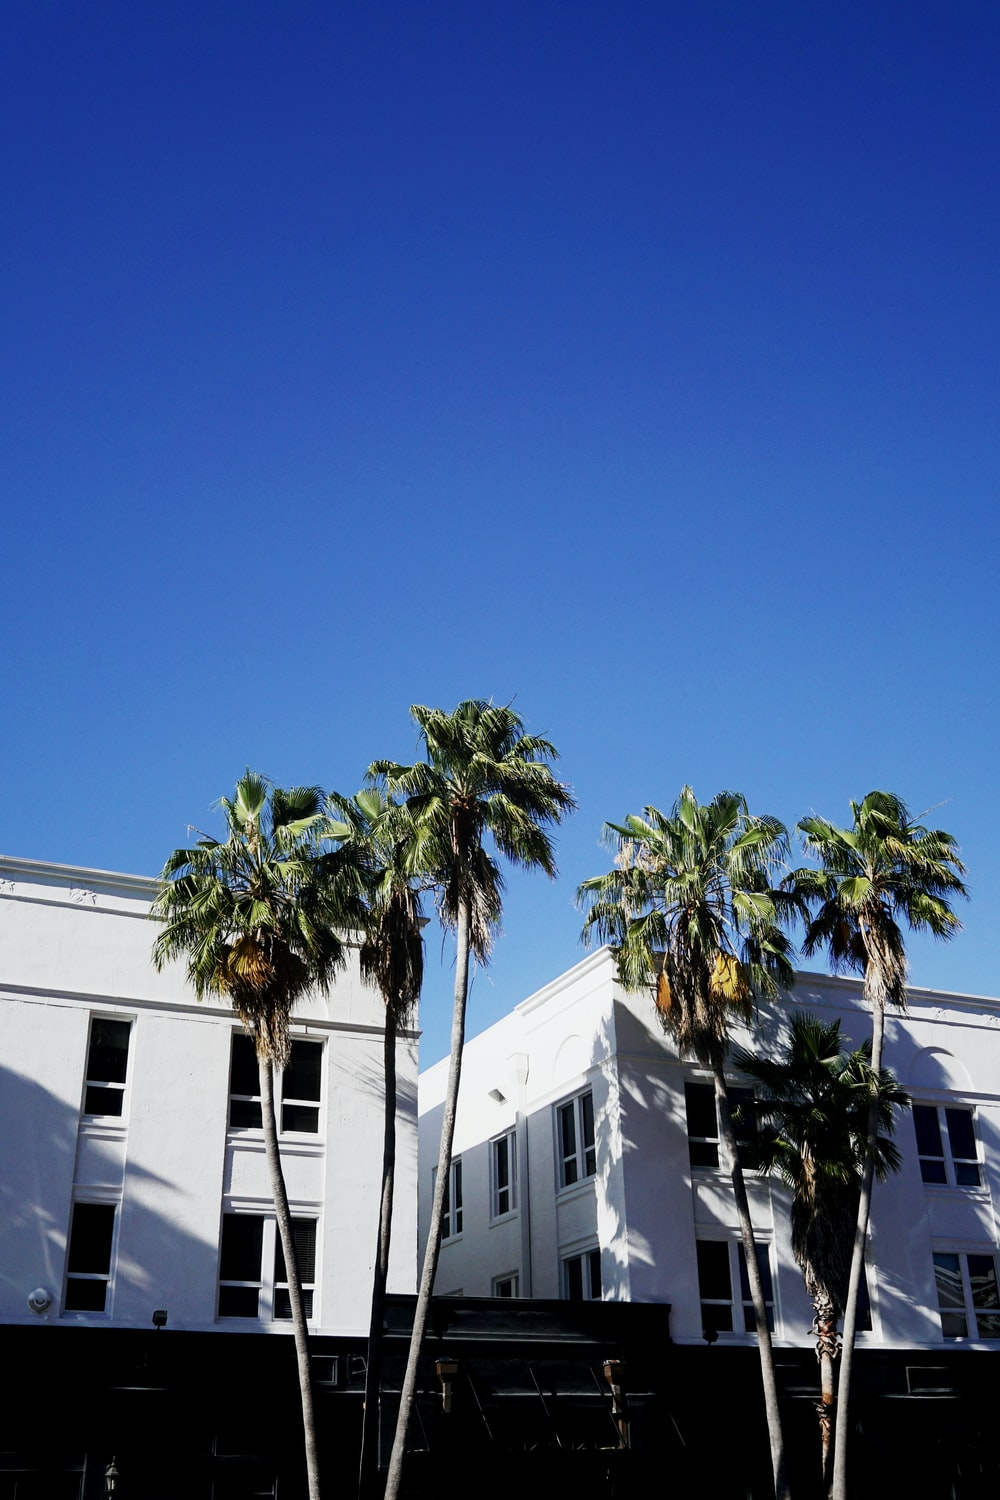 green palm tree near white concrete building during daytime